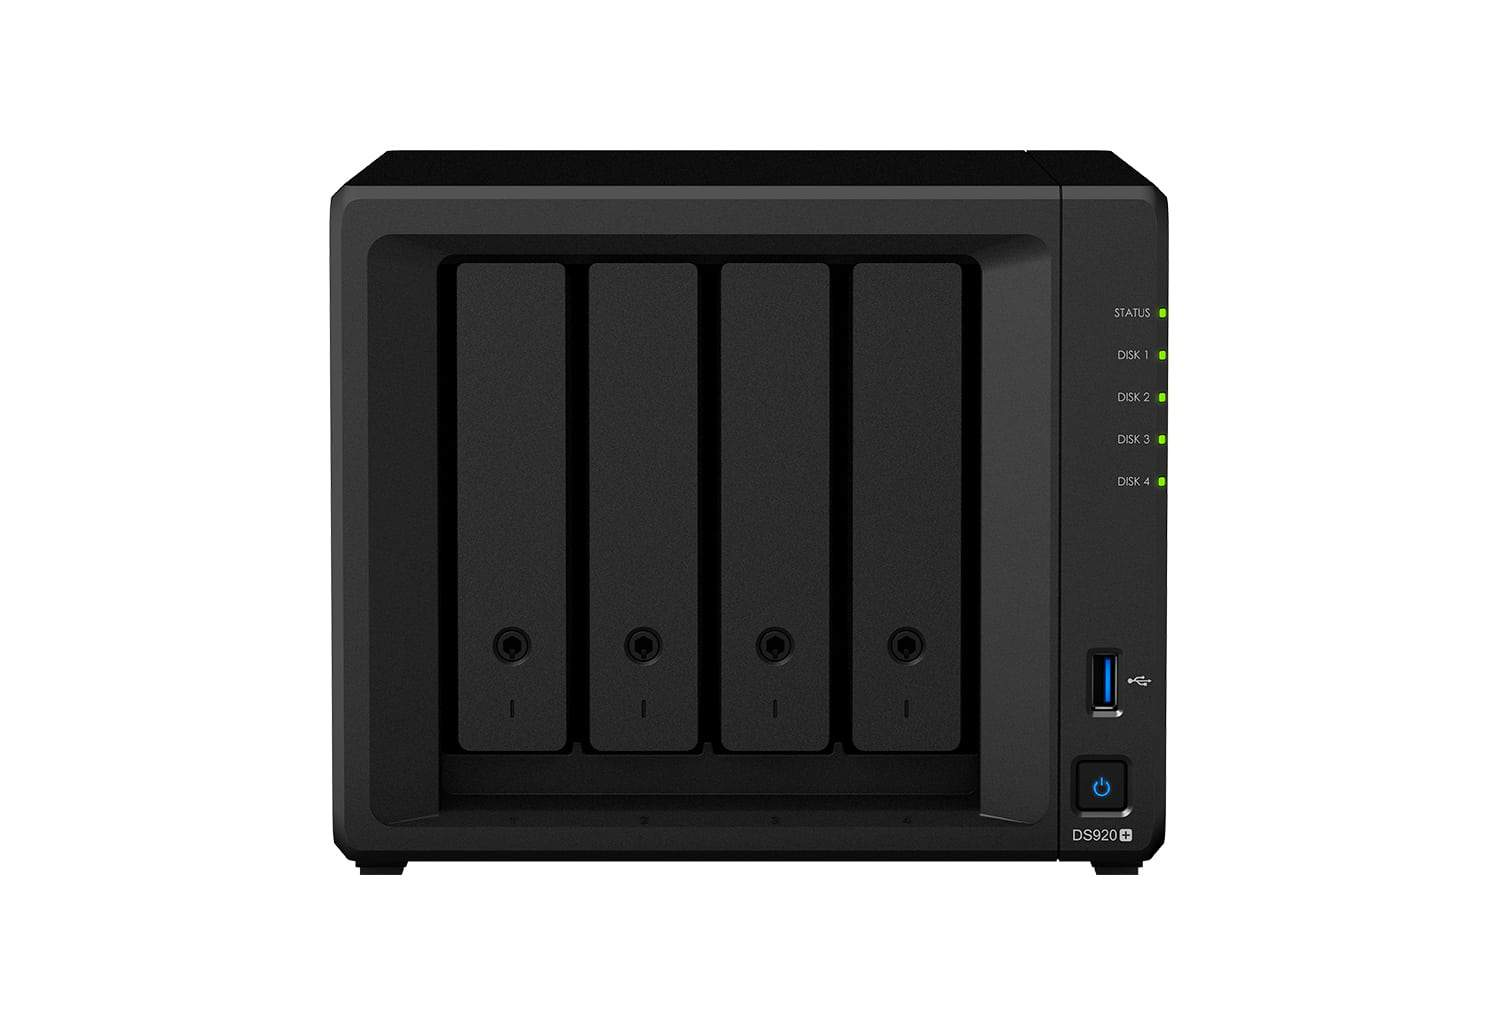 DS920 + s pregledom Synology Active Backup Suite